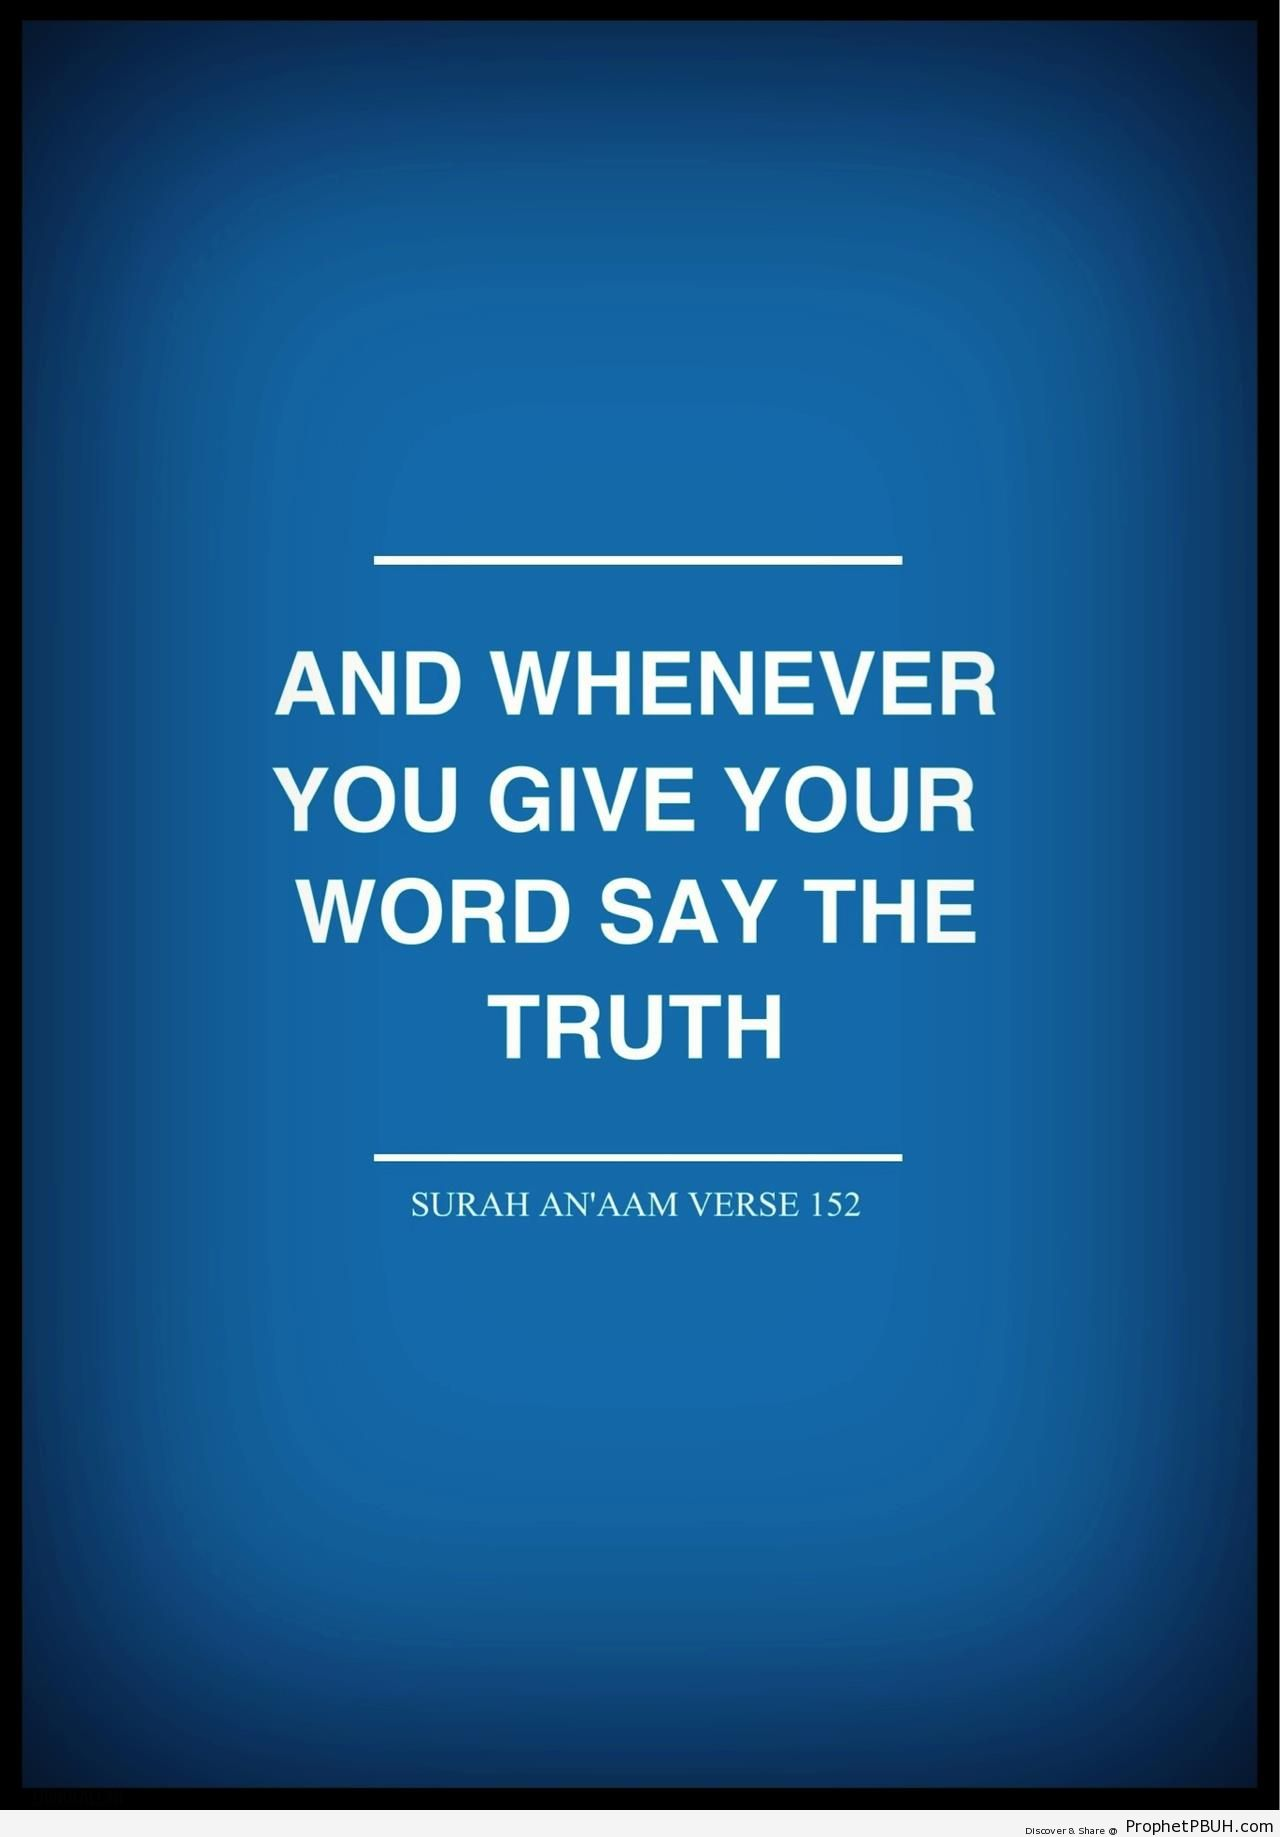 Quran 6-152 - Quran 6-152 (And whenever you give your word say the truth)